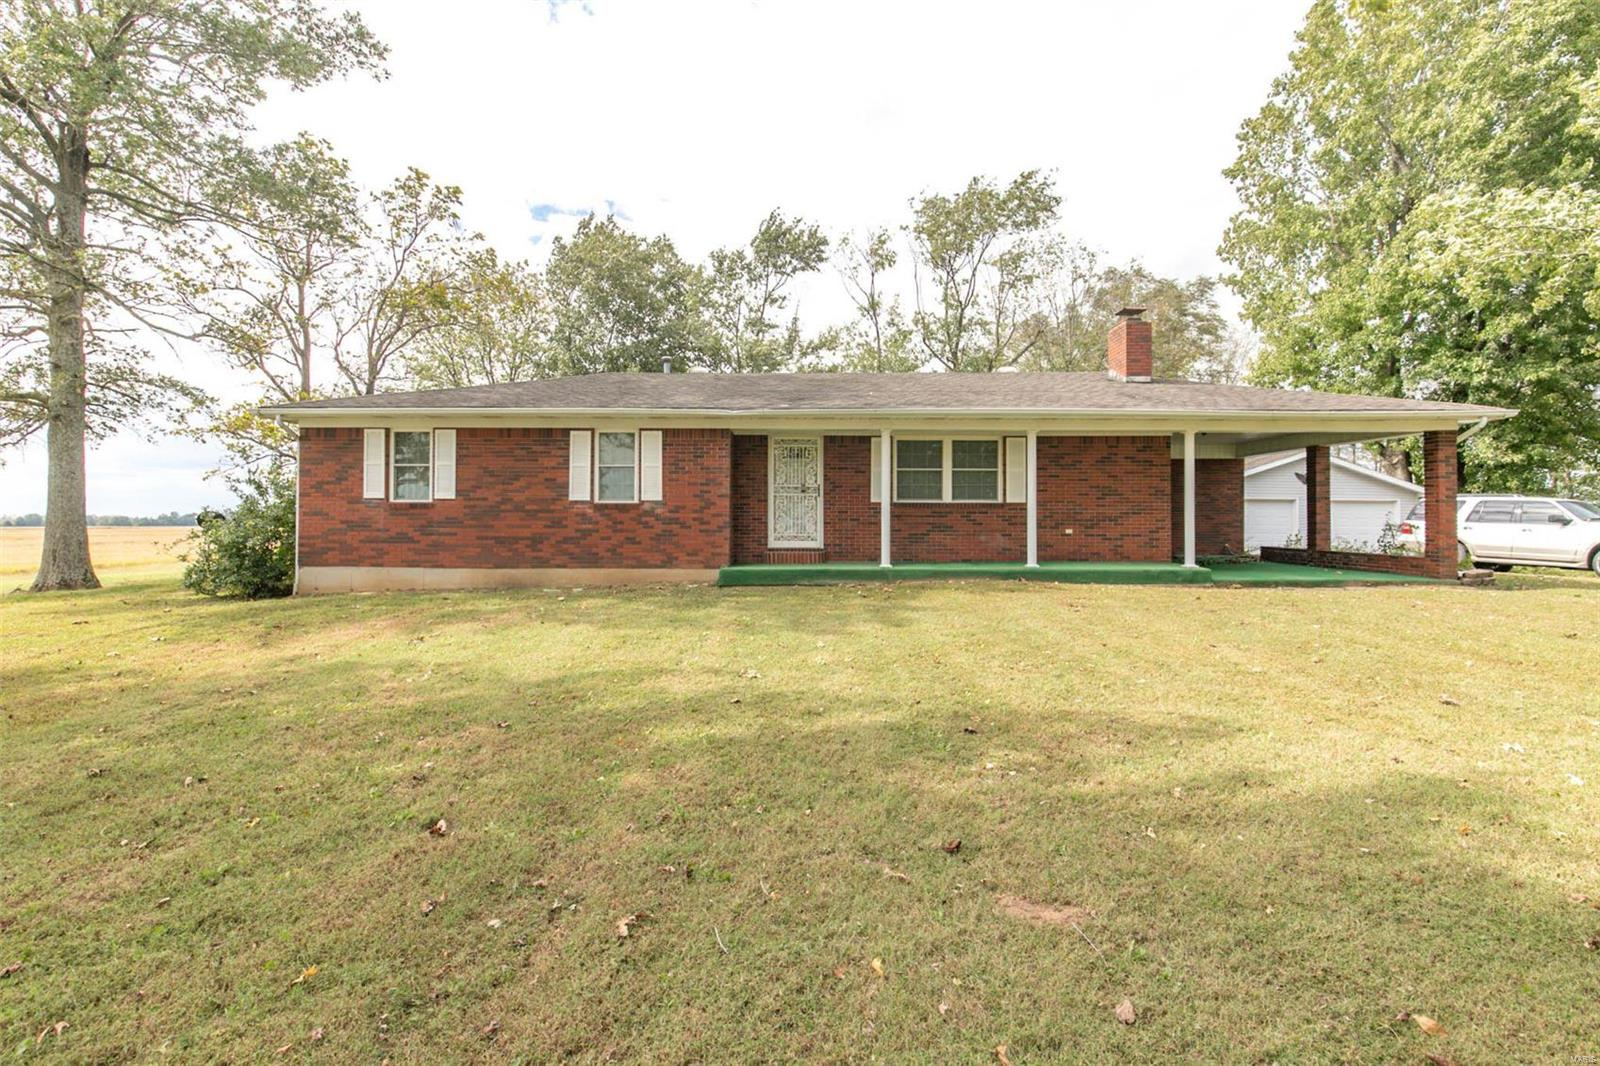 5237 County Road 355, Neelyville, MO 63954